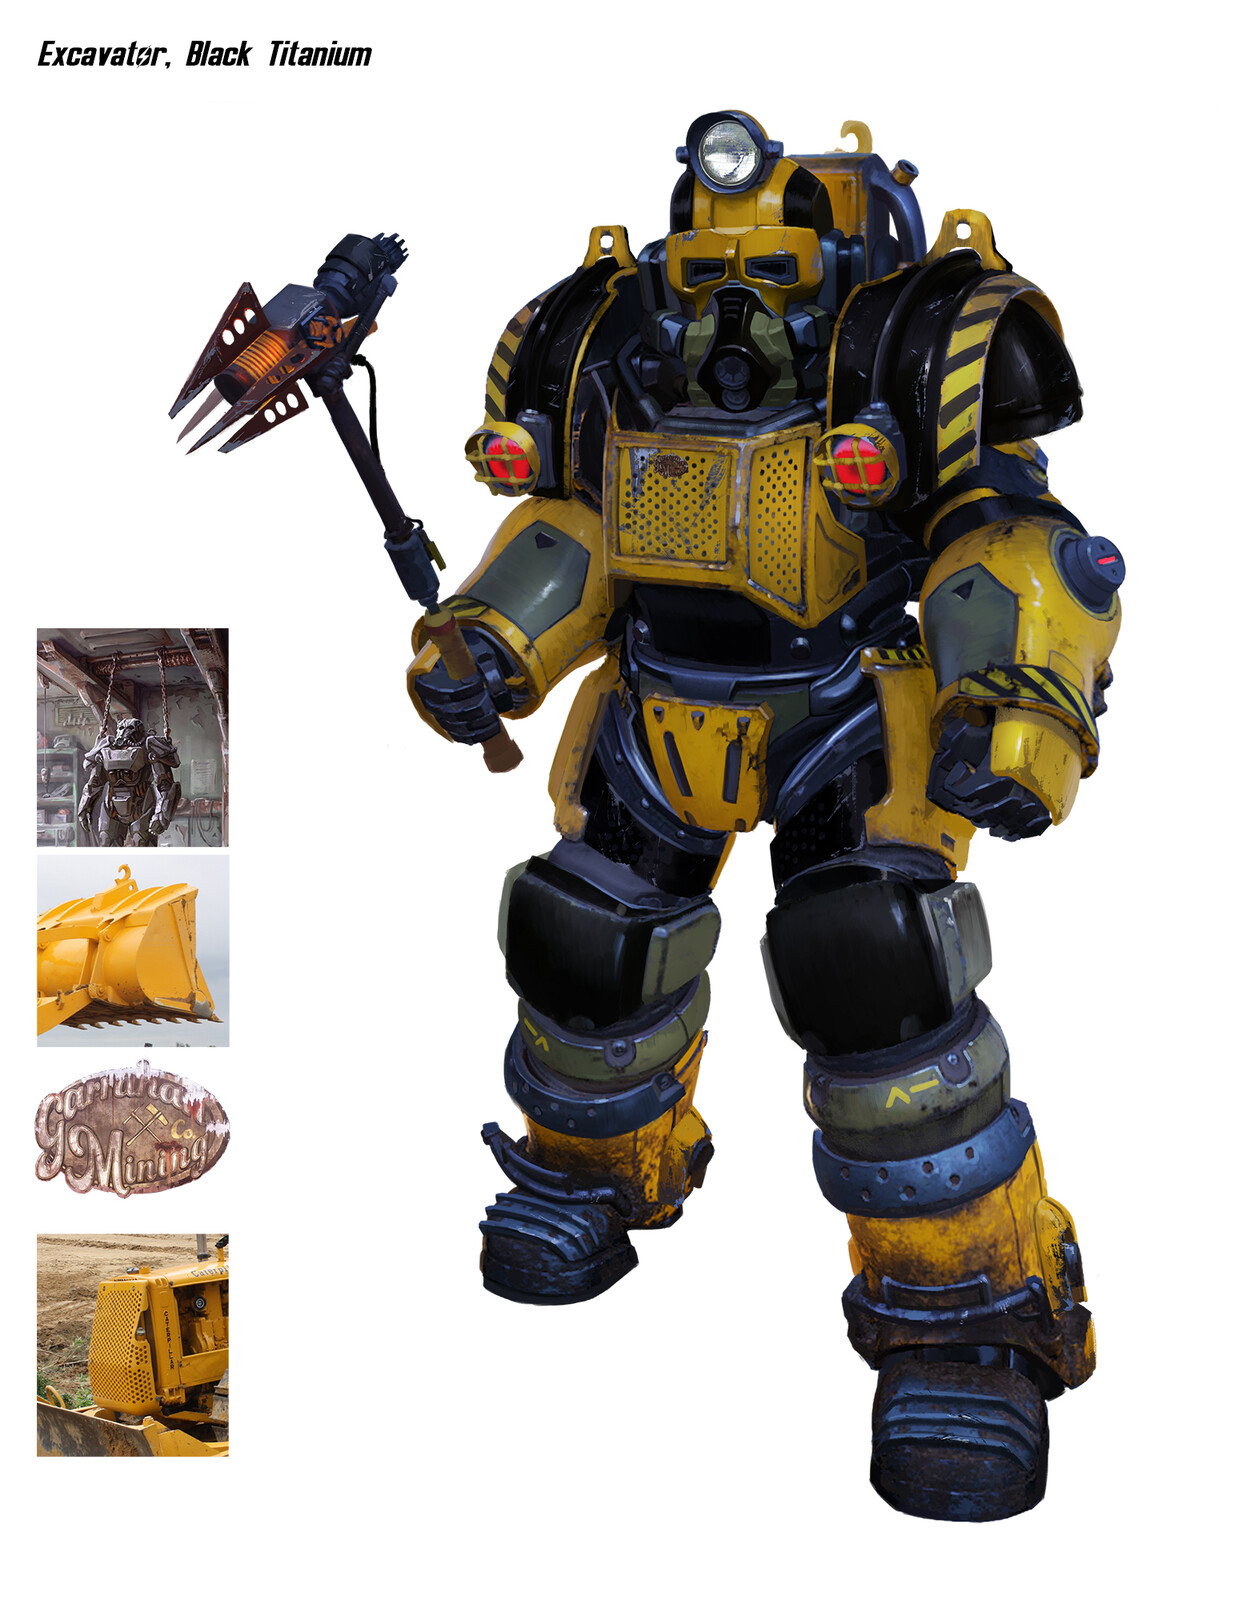 Fan art for Fallout 76, a revision of the existing Excavator power armor.